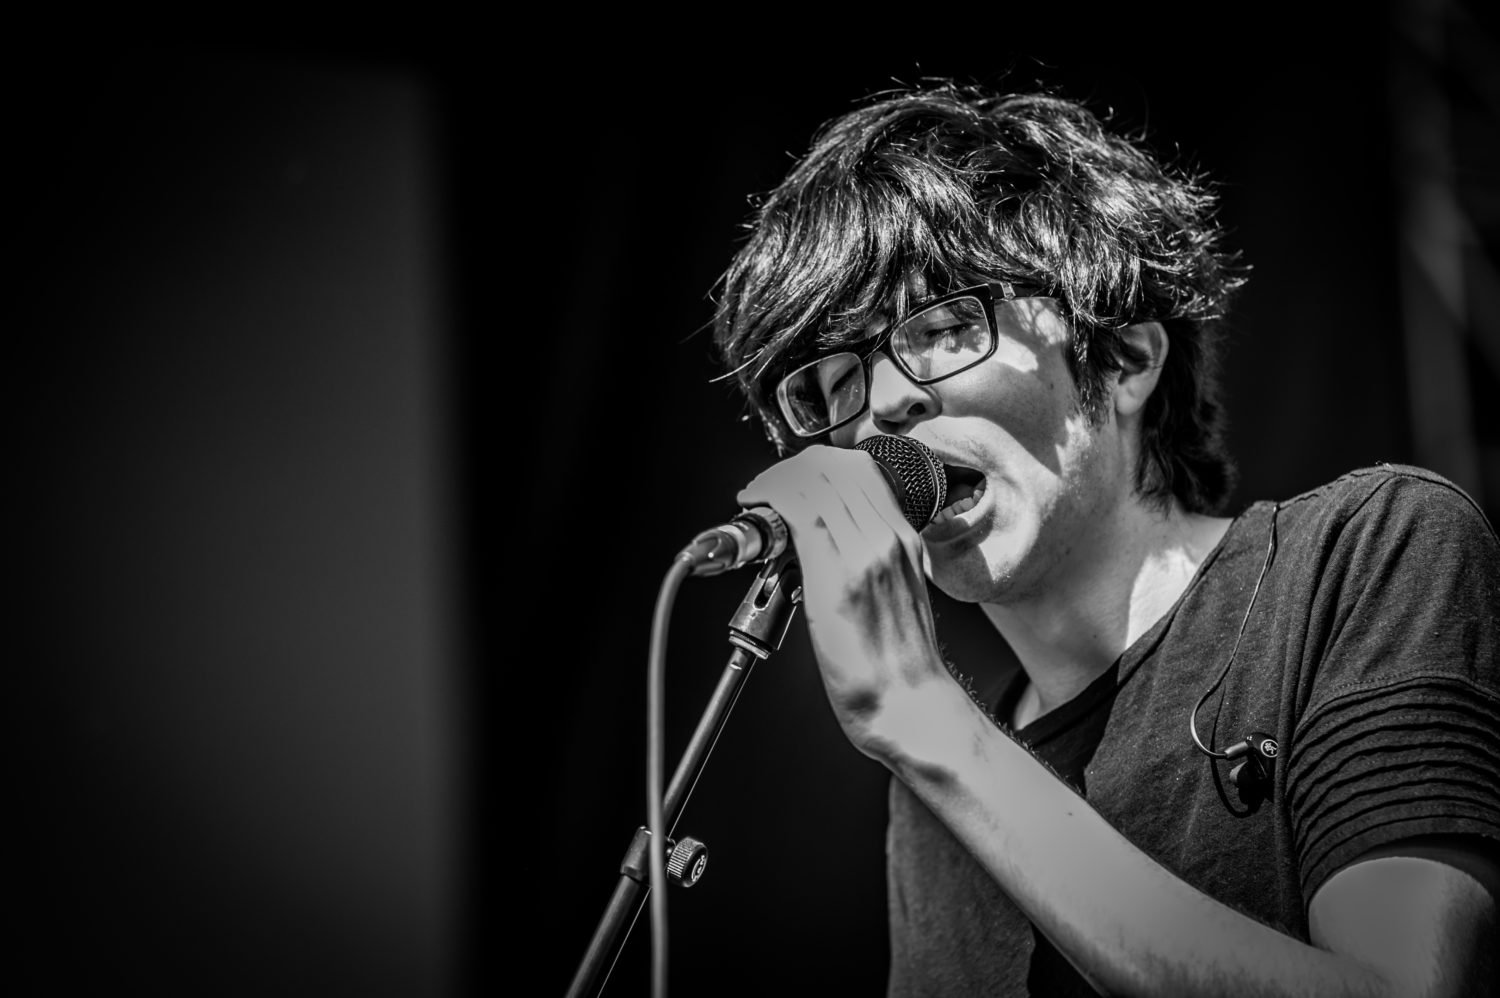 Car Seat Headrest performing at 80/35 Music Festival 2018 in Des Moines, Iowa